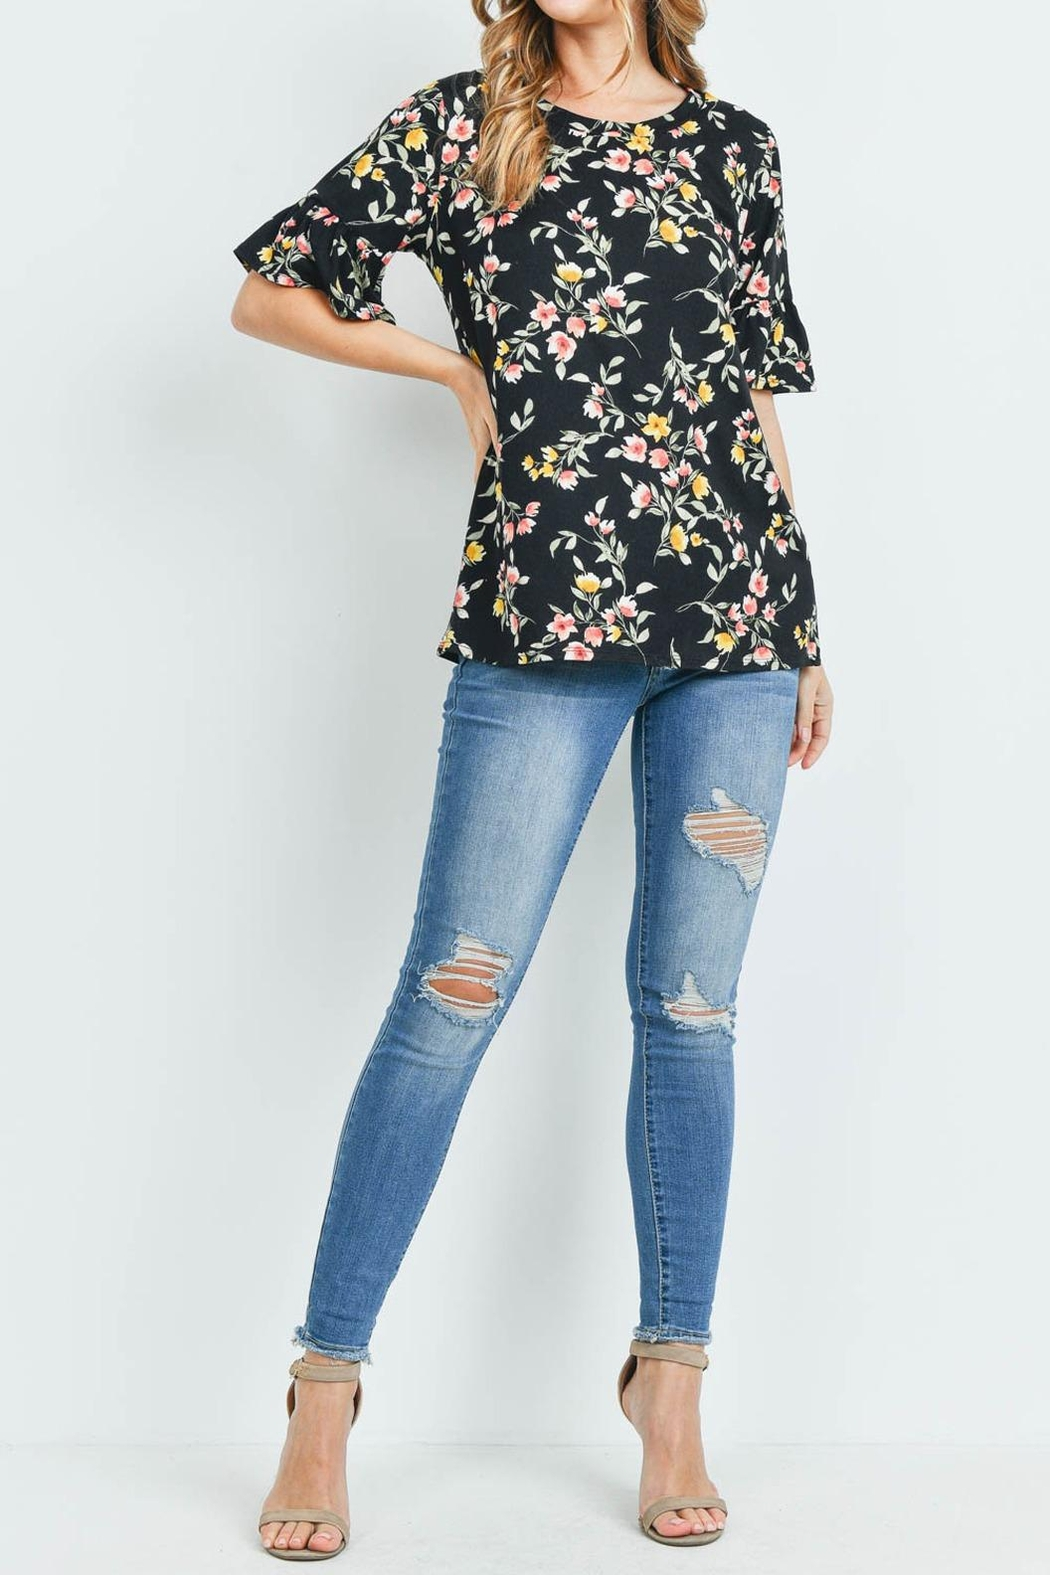 Riah Fashion Bell-Sleeves-Round-Neck-Floral-Top - Main Image